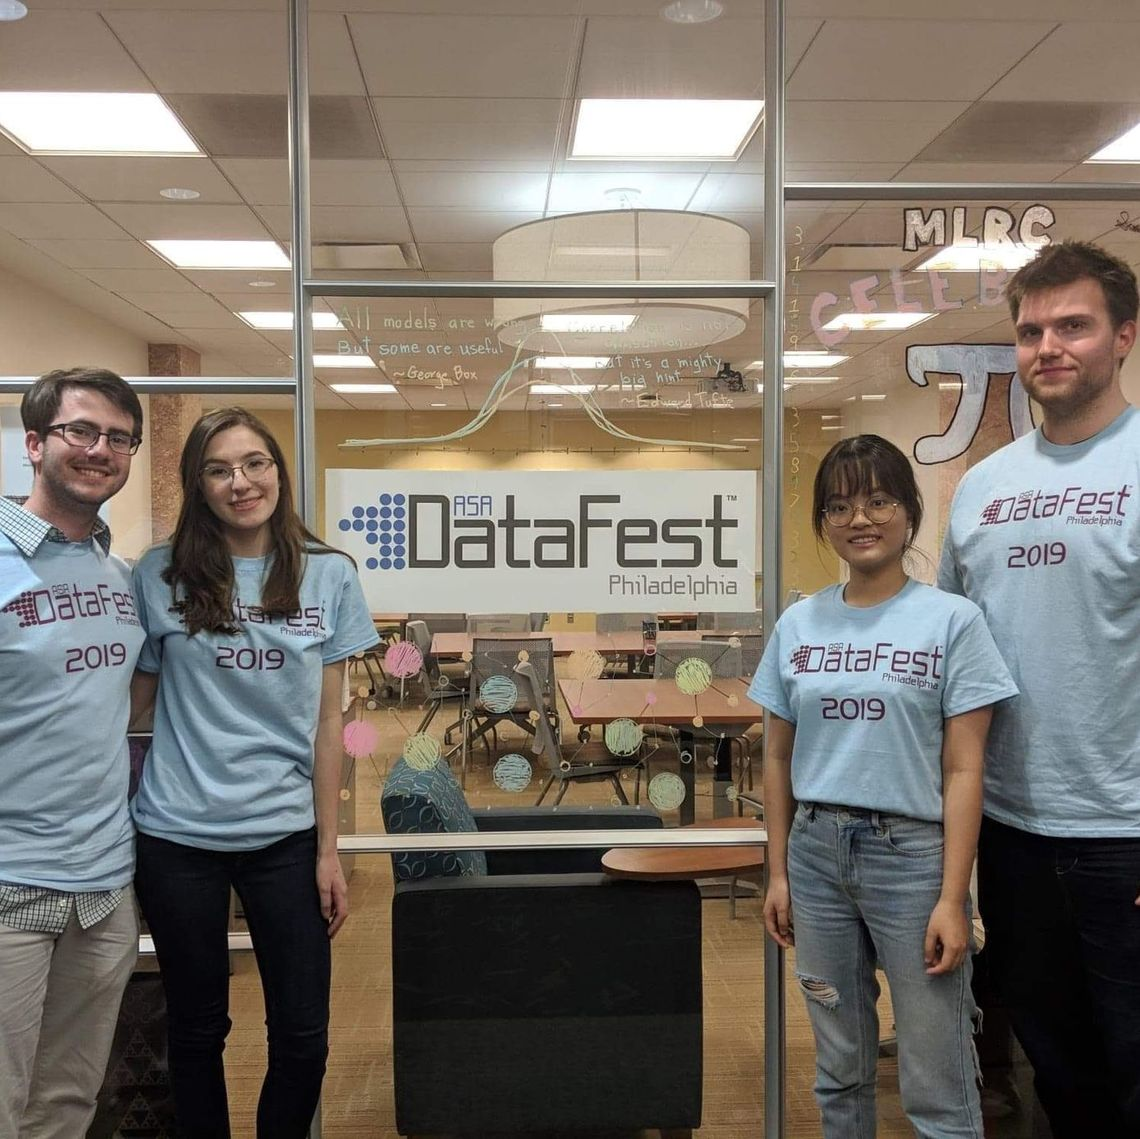 For 48 hours one weekend in early April, these four mathematics majors interested in statistics and data science mined data round-the-clock in a competition with teams from other colleges.